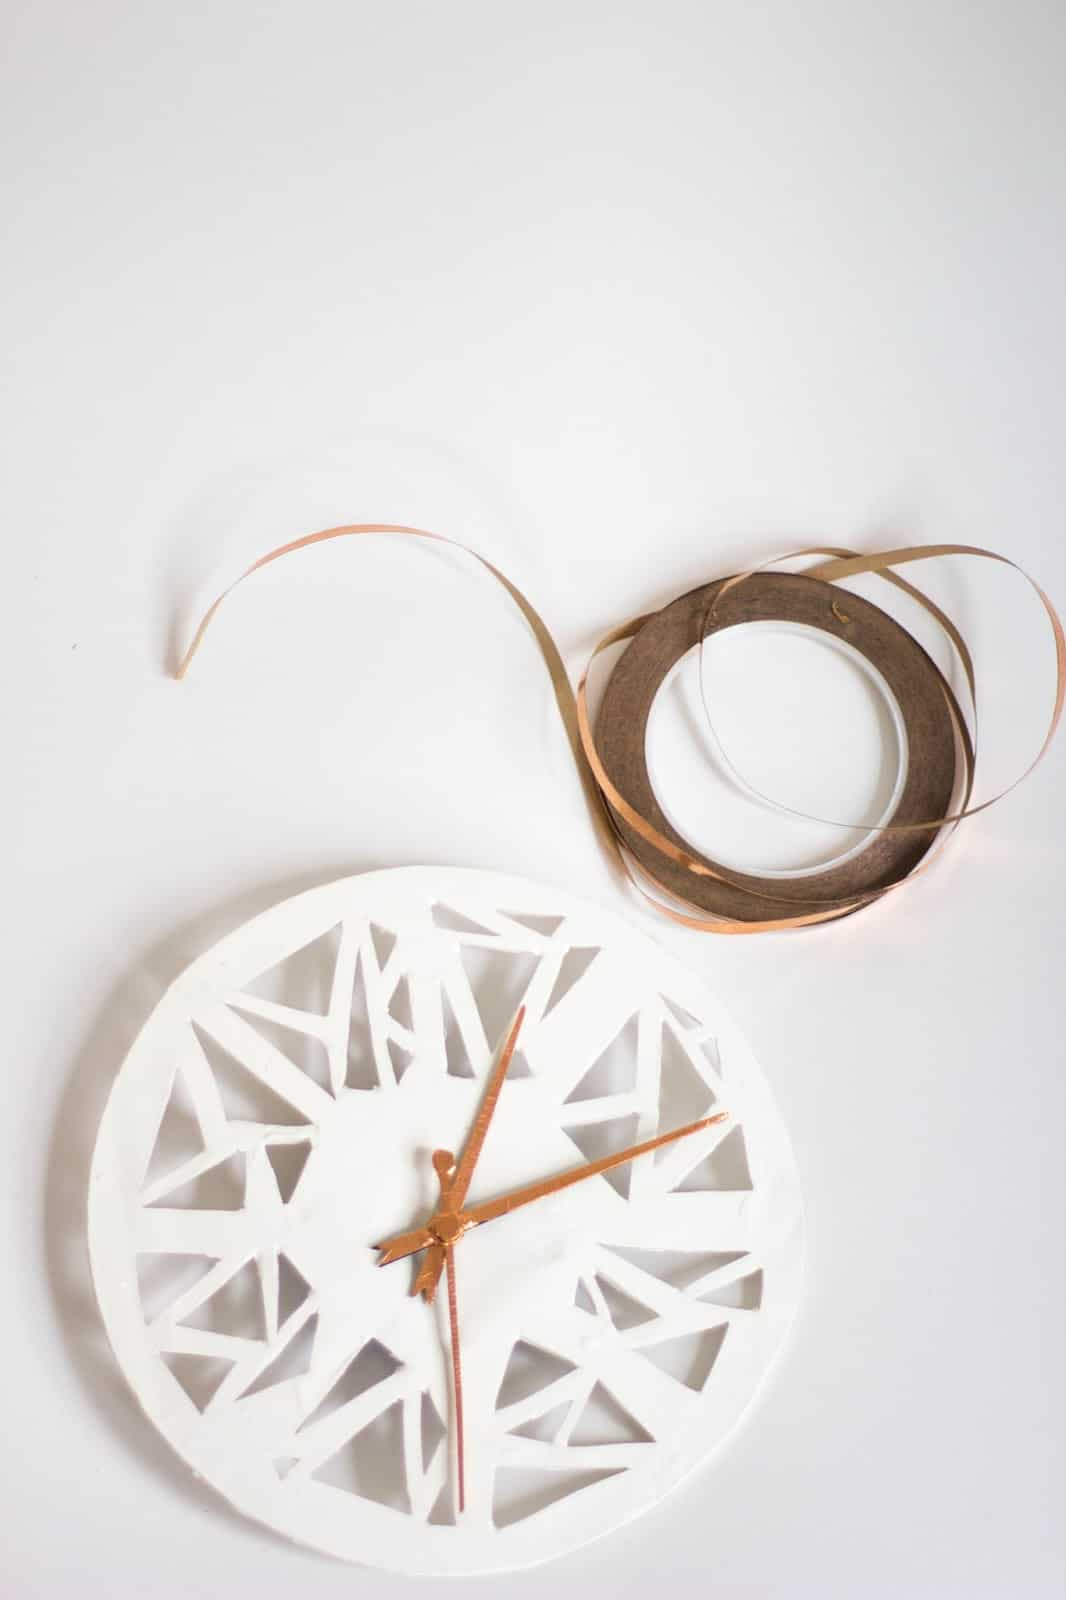 Geometric clay clock